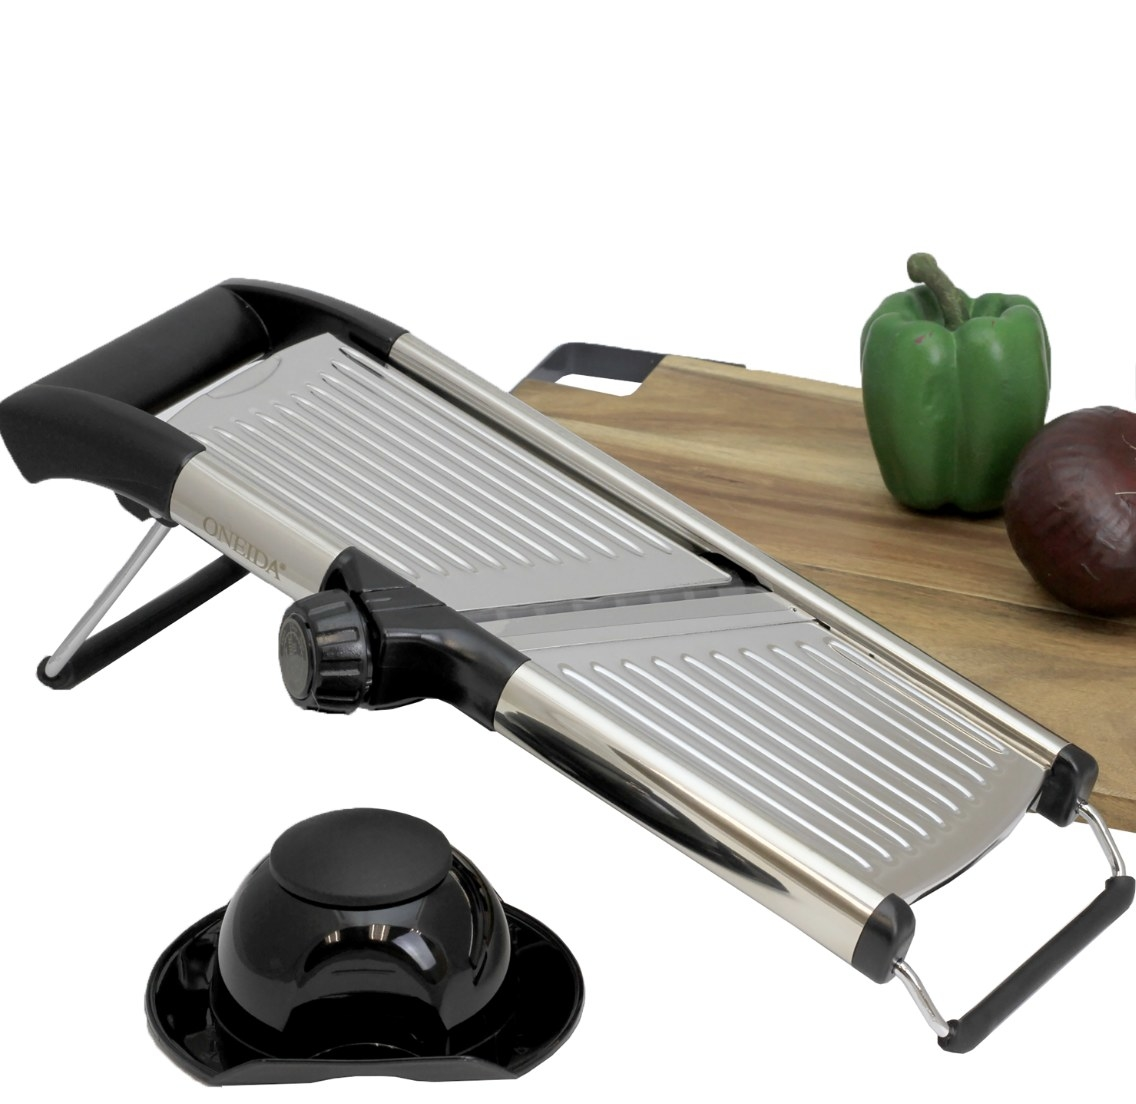 The silver and black device is next to a tan cutting board holding veggies